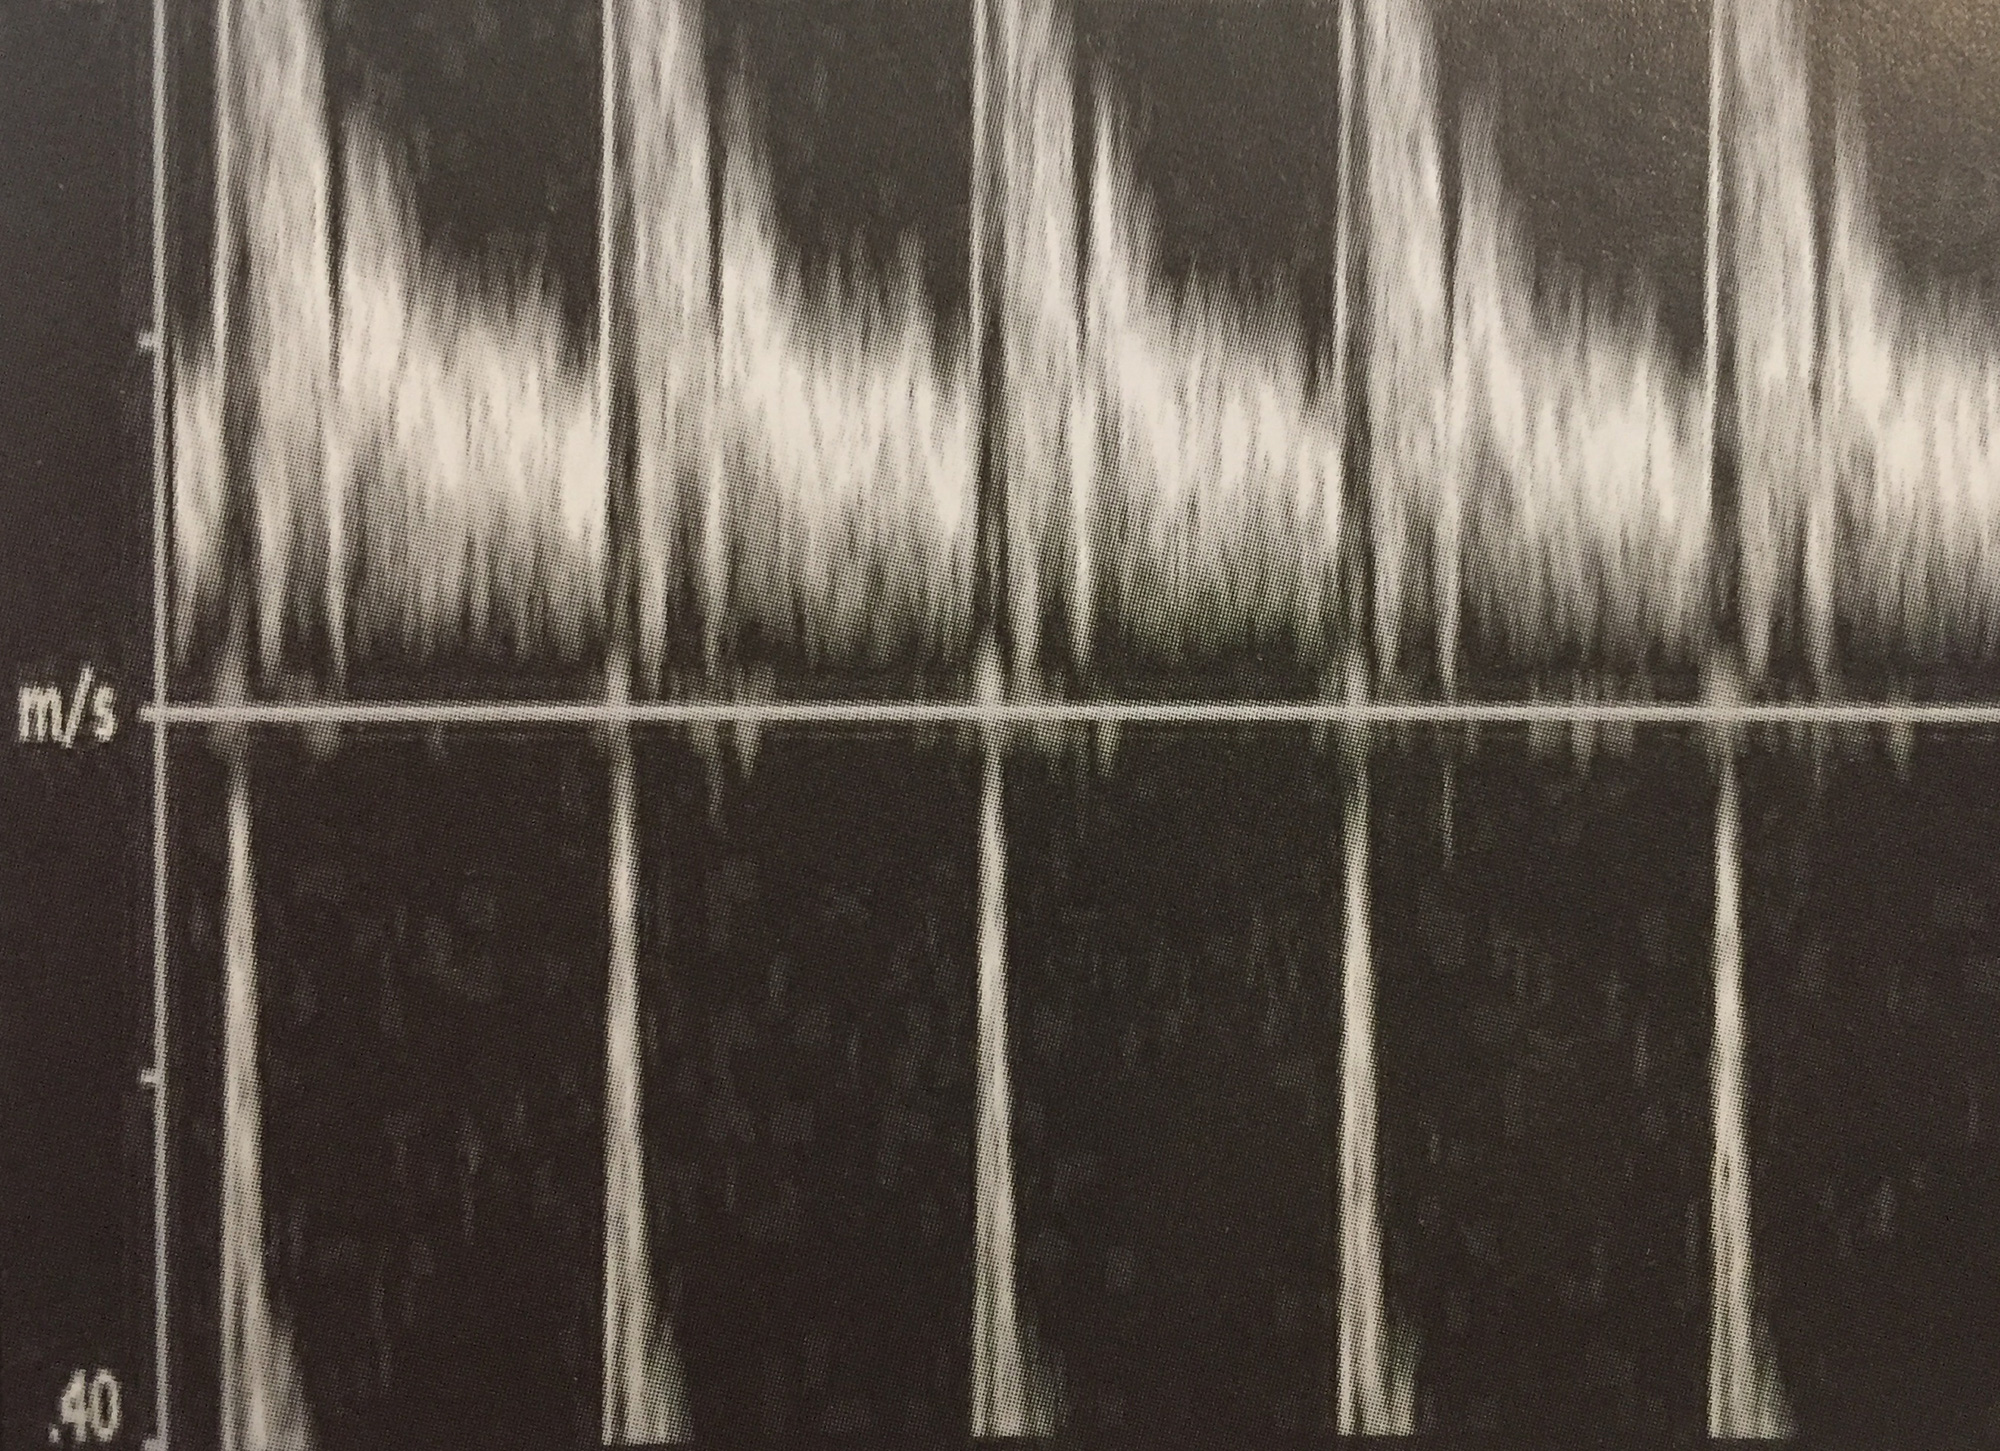 Techniques to Avoid Aliasing: Lower frequency transducer or adjusting scale to its maximum, ESP Inc